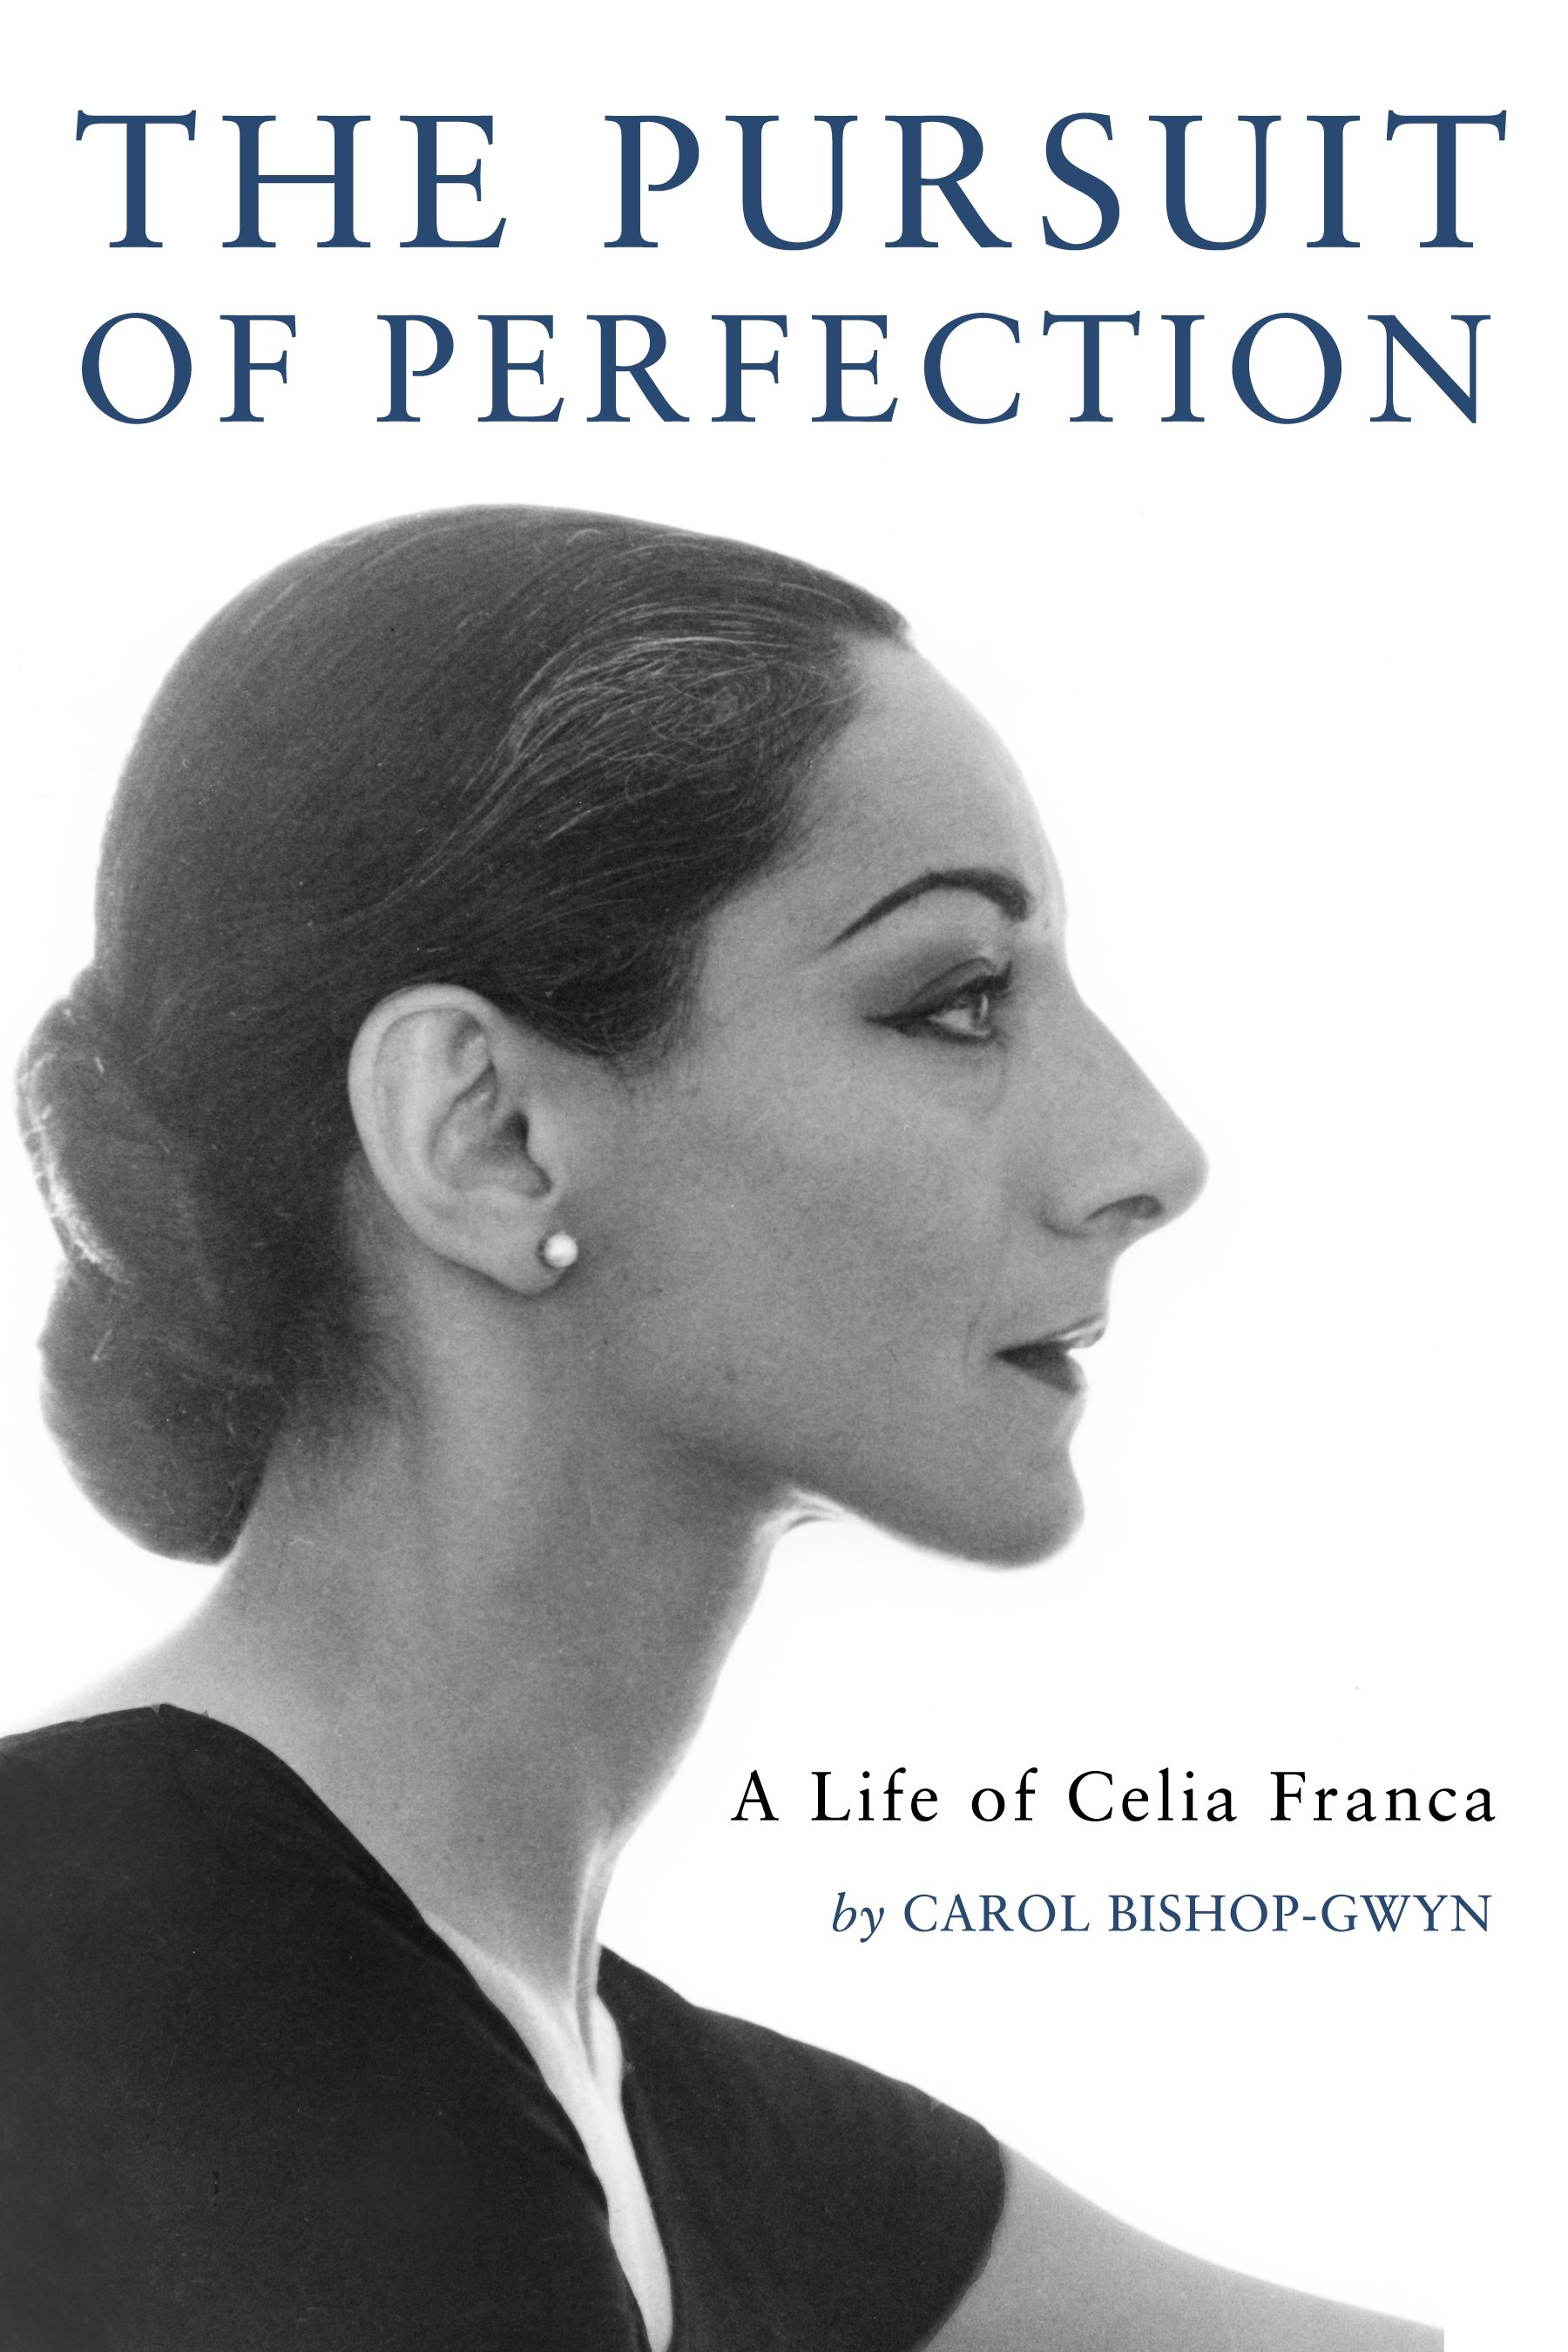 ARTFUL BLOGGER: New biography explores battles and heartbreaks of Celia Franca